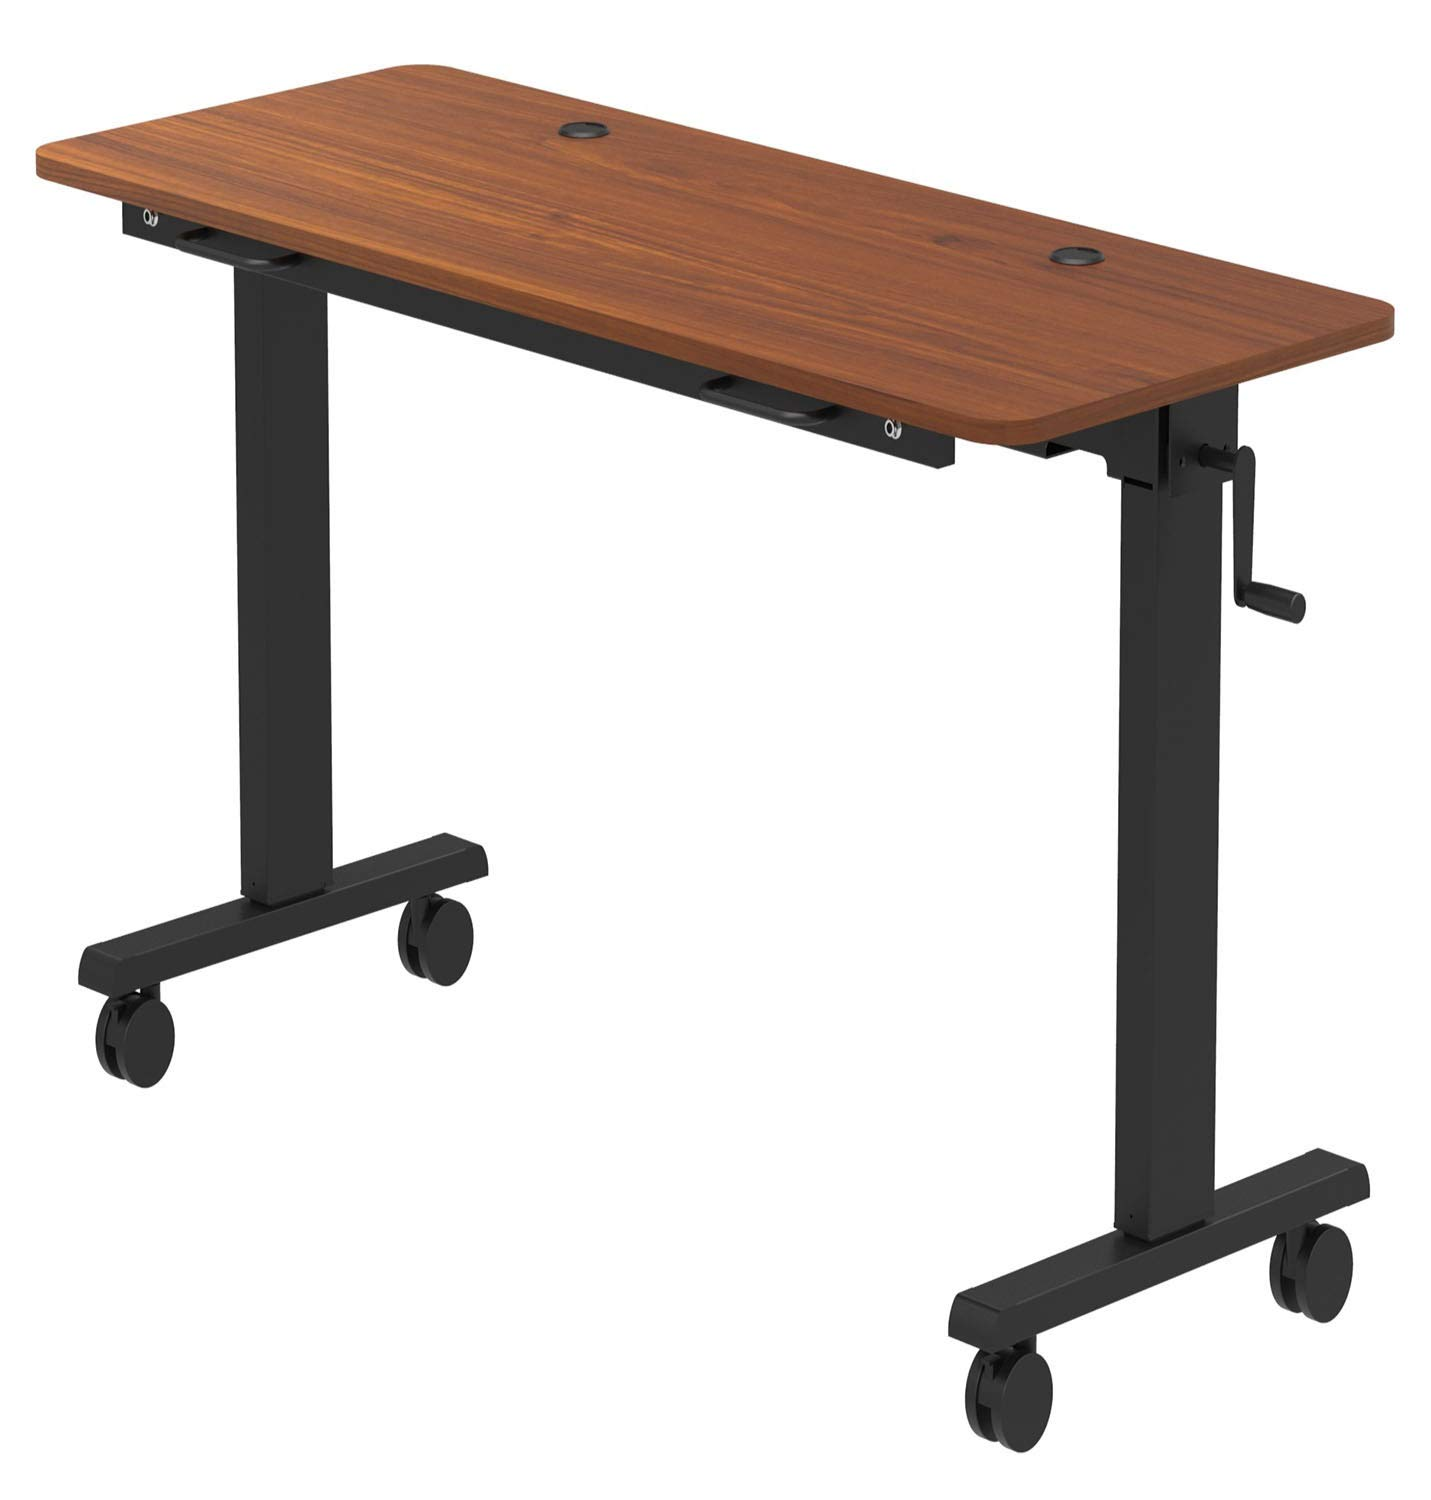 Stand Up Desk Store Adjustable Height Training Table – Flip Top Table Conveniently Nests and Rolls Away for Easy Storage (Teak, 72'')